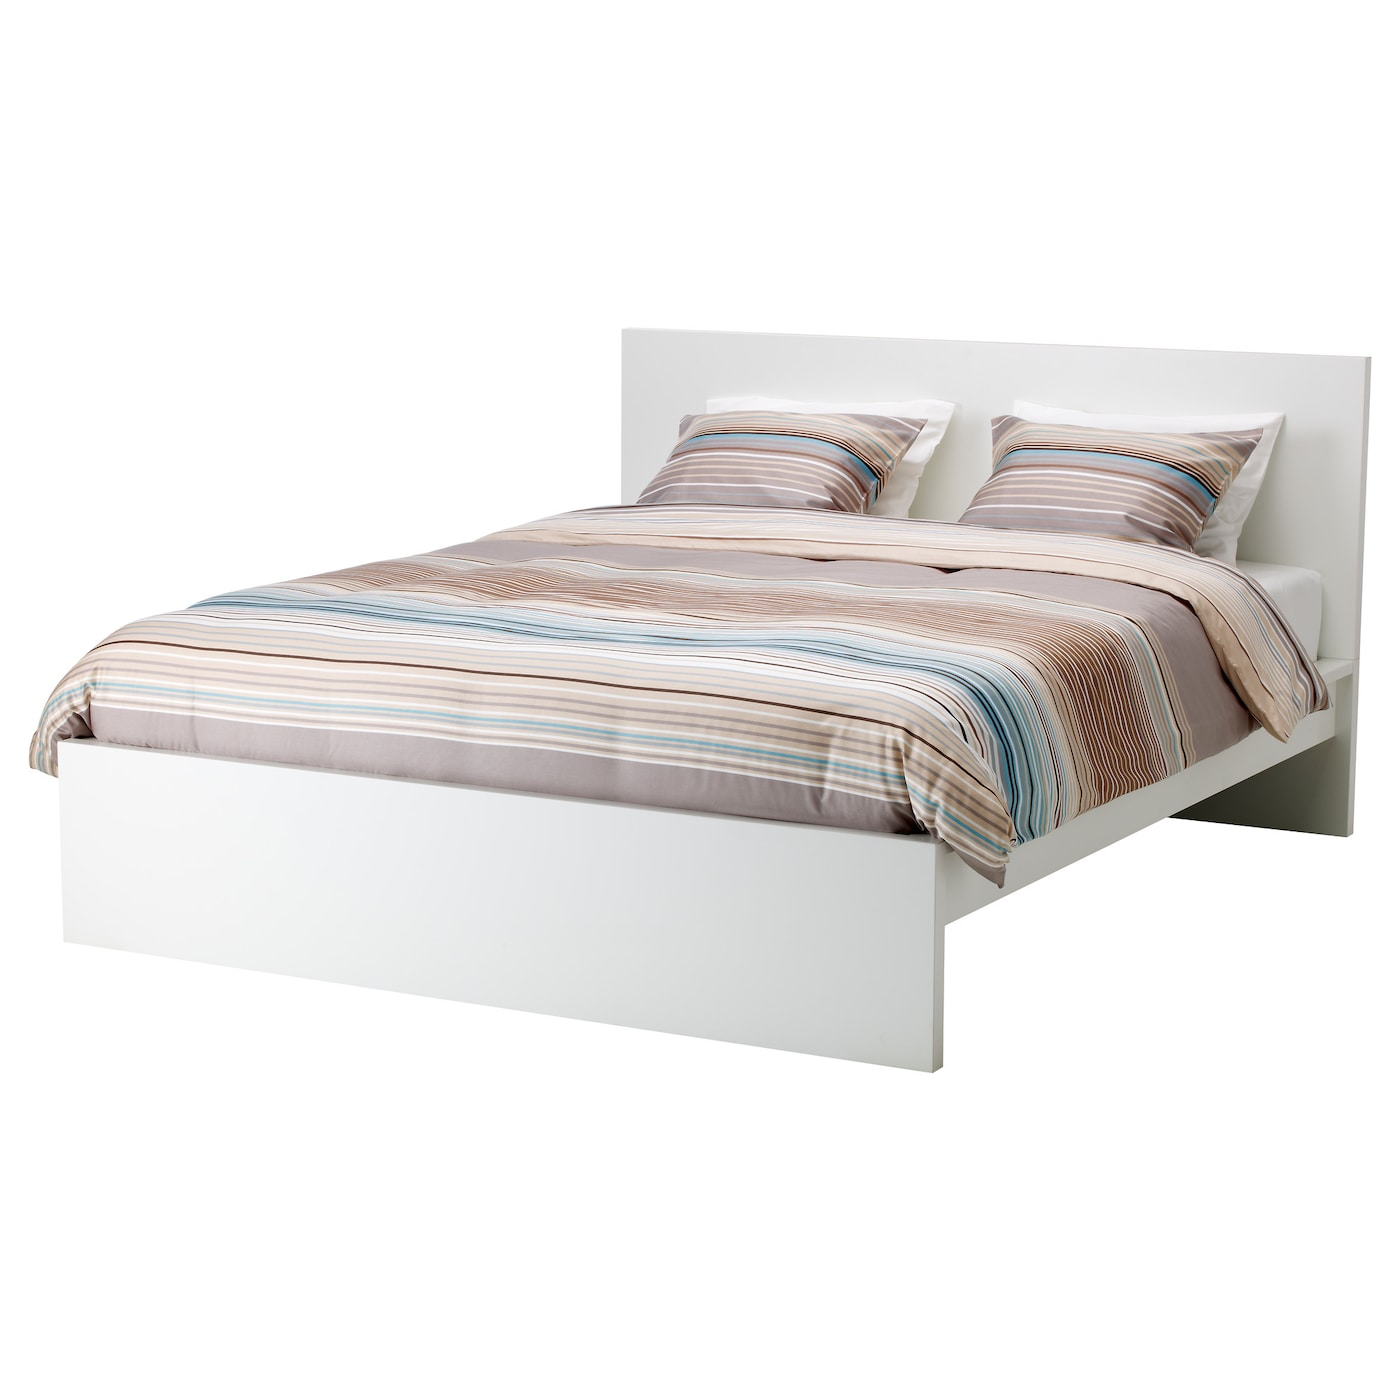 Boxspringbett ikea 180x200  Double & King Size Beds & Bed Frames - IKEA